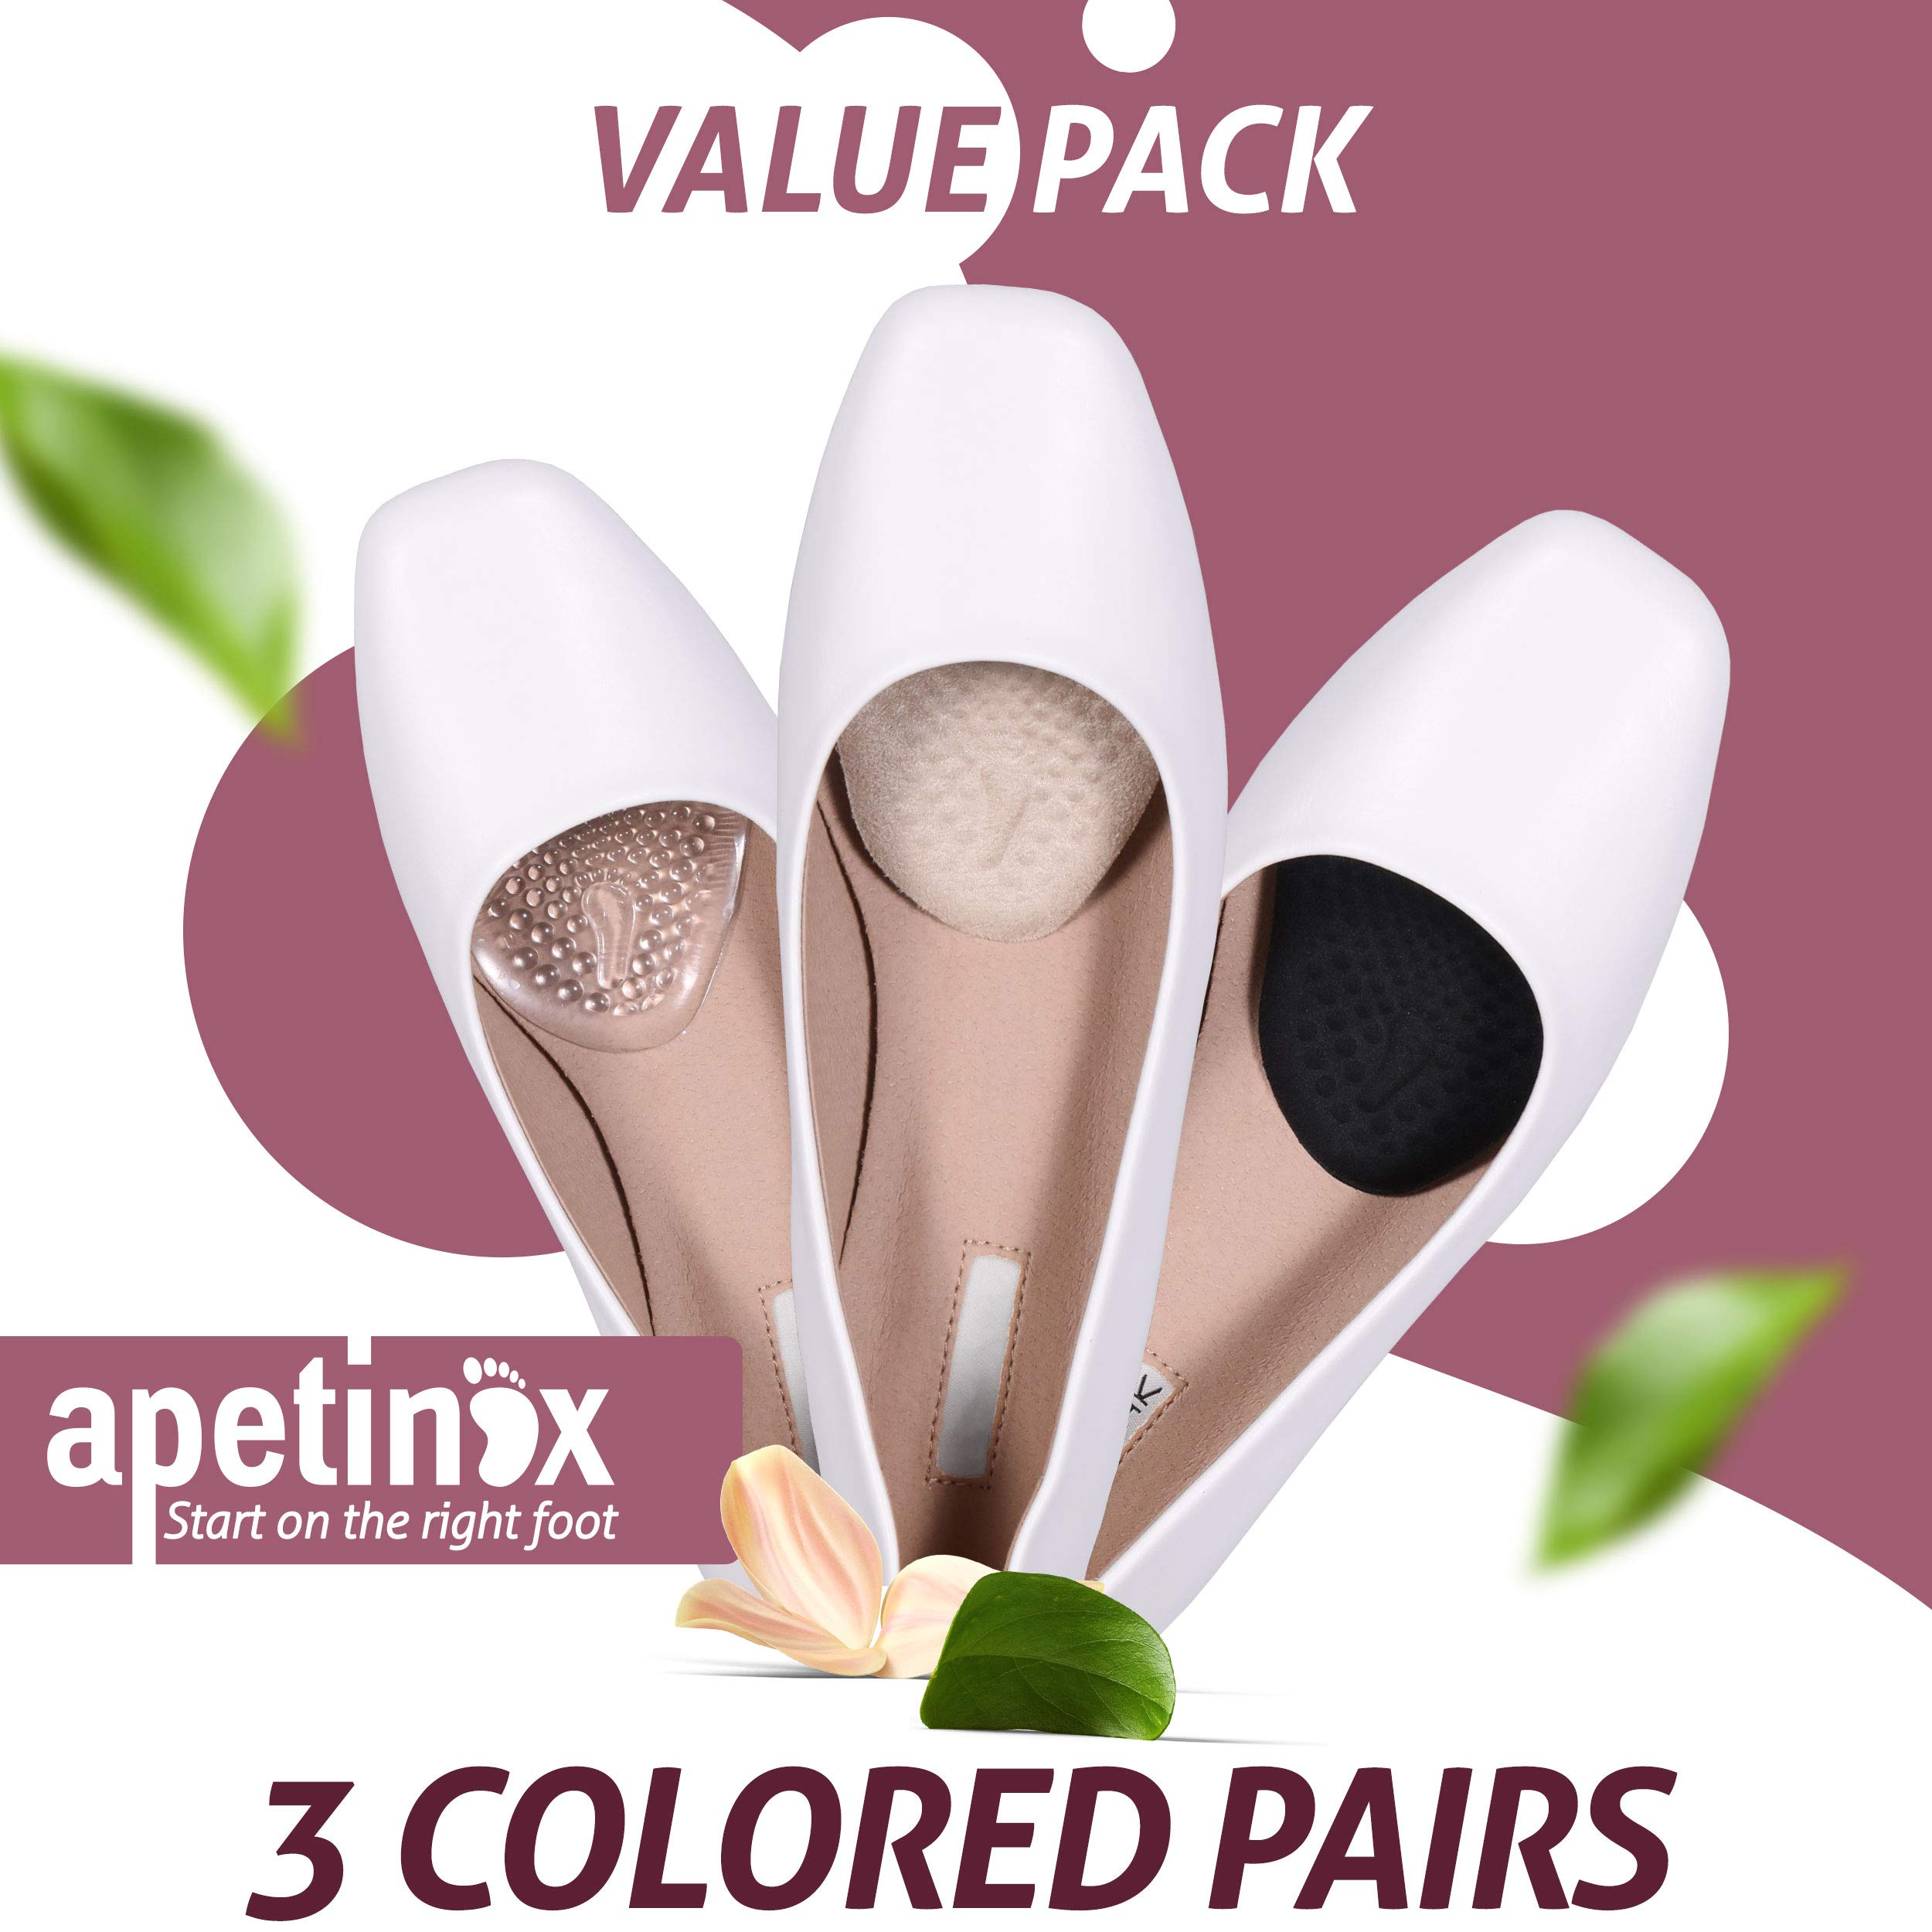 Metatarsal Pads for Women 3 Pairs, High Heel Cushion Inserts, Ball of Foot Cushions for Metatarsalgia, Mortons Neuroma, Feet Pain Relief, Forefoot Cushioning Shoe Support, Comfort Insoles by Apetinox